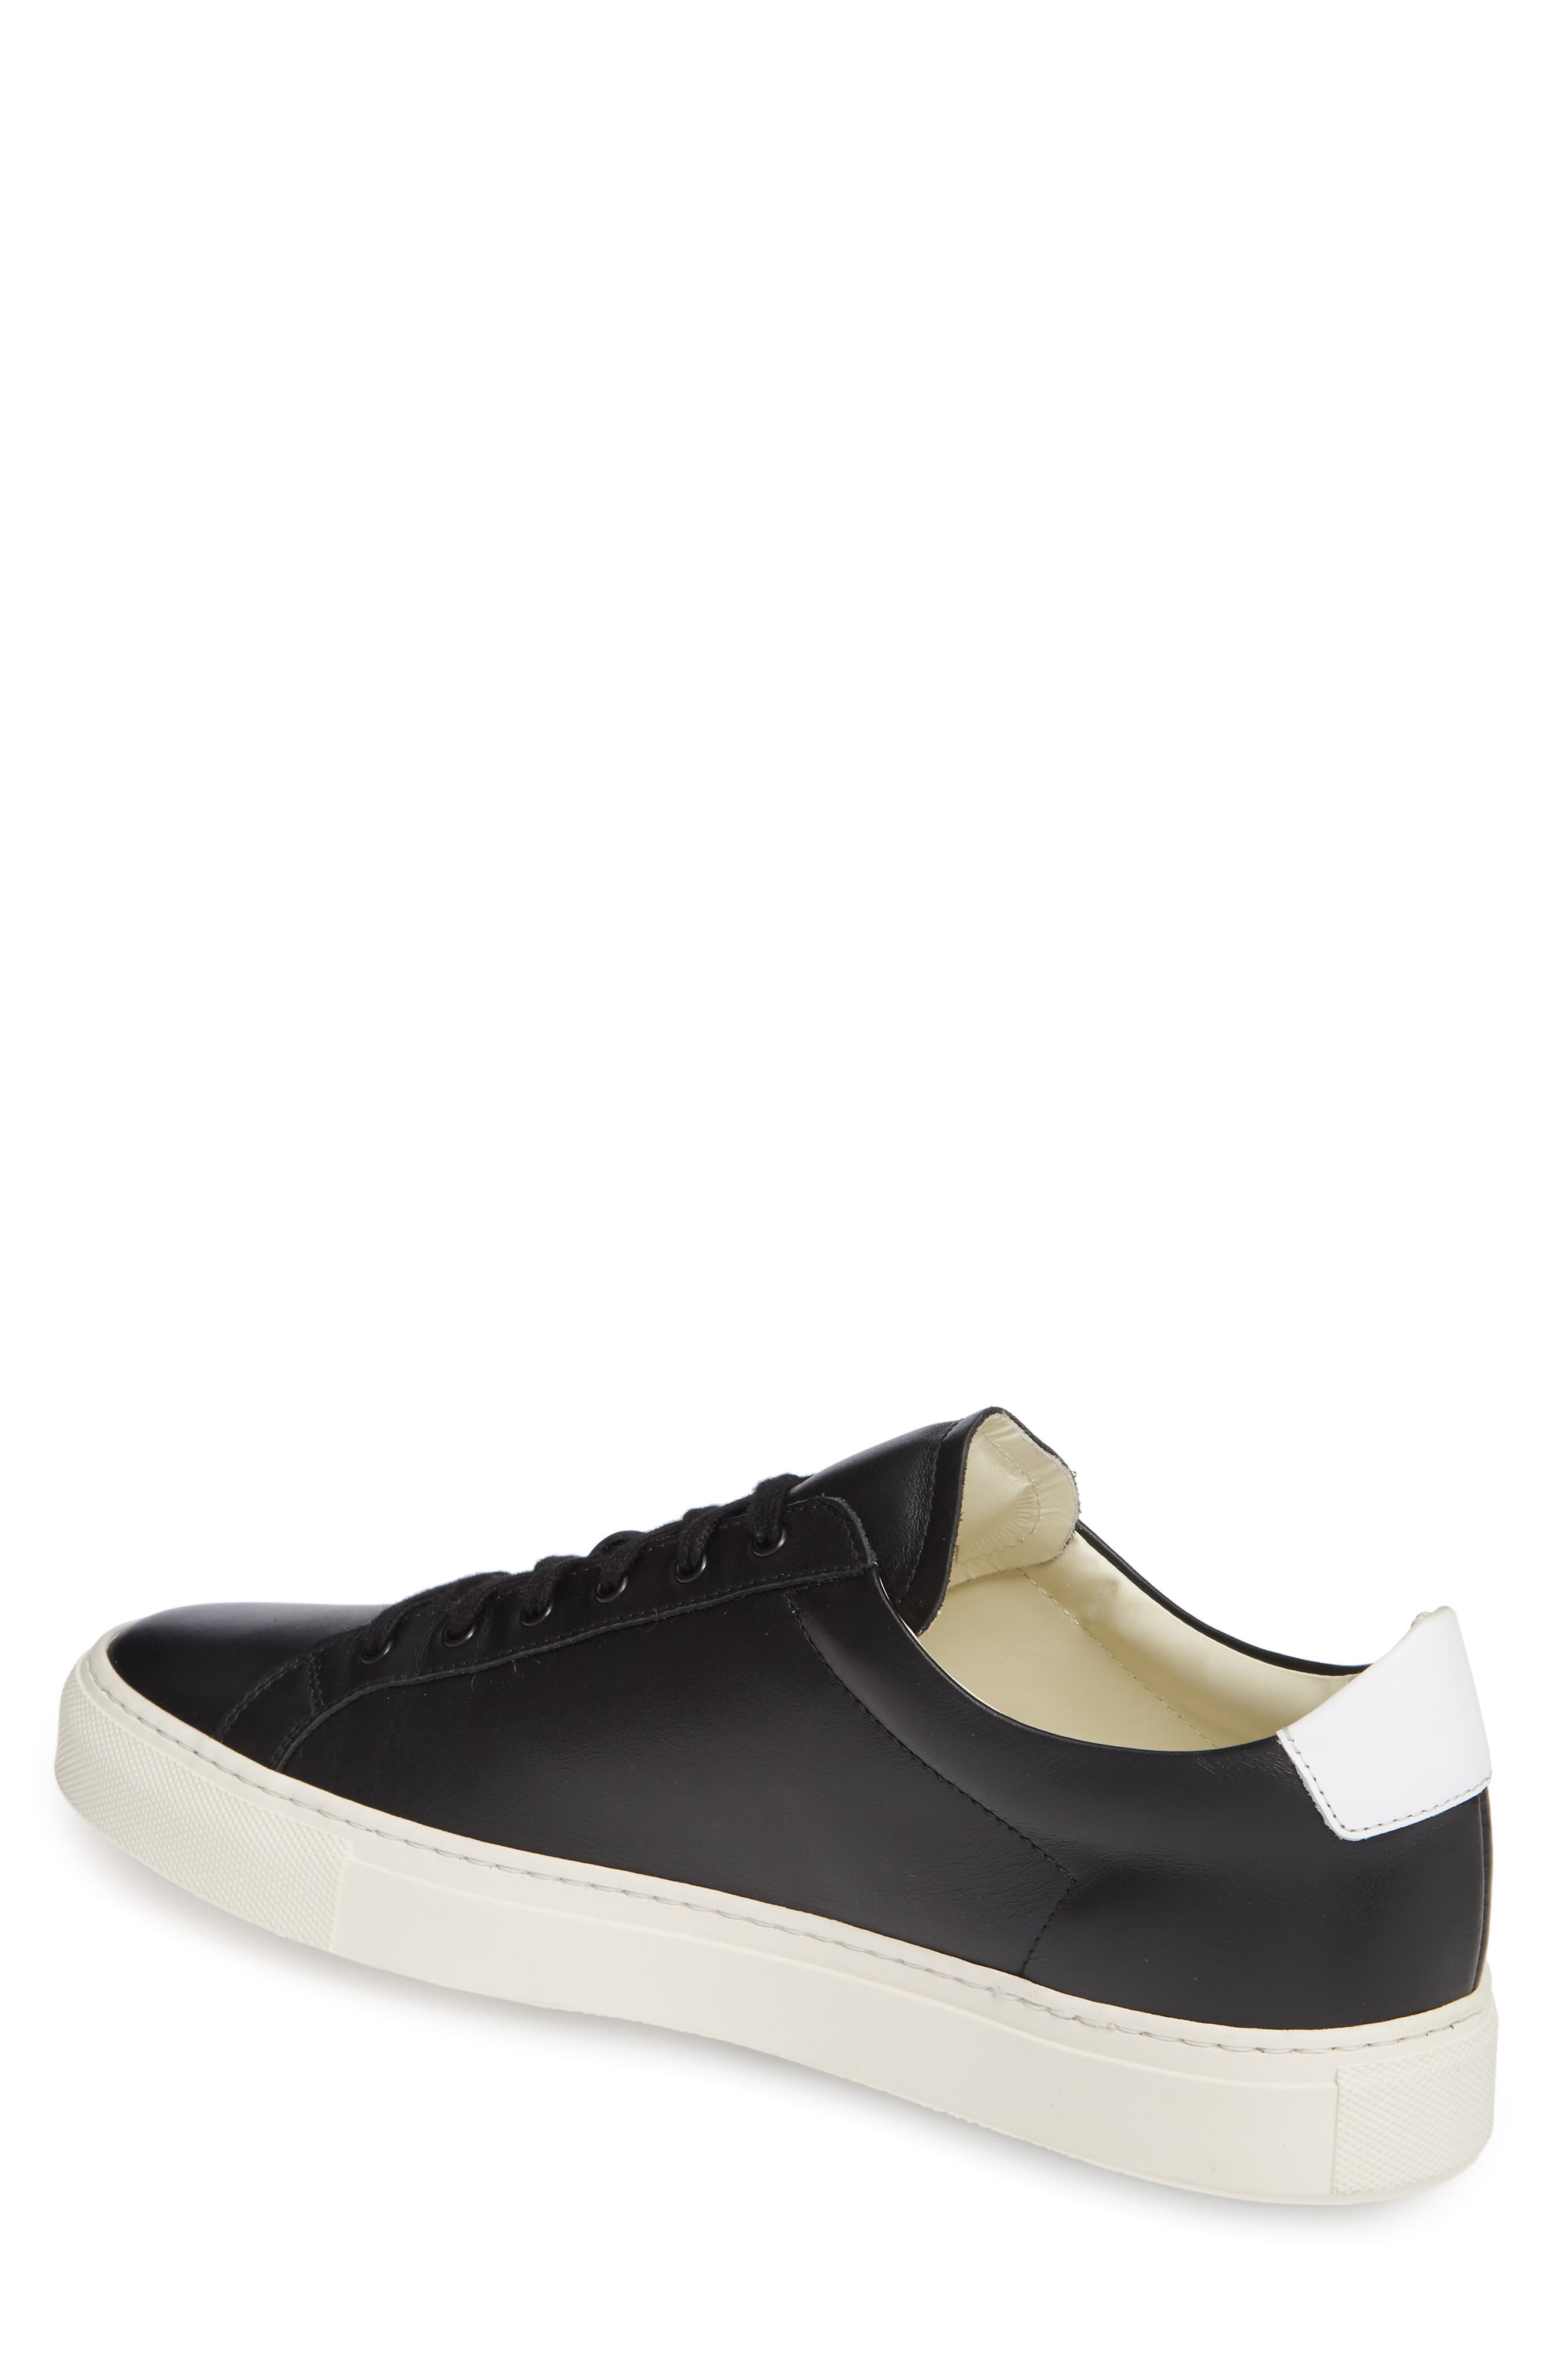 COMMON PROJECTS, Retro Sneaker, Alternate thumbnail 2, color, BLACK